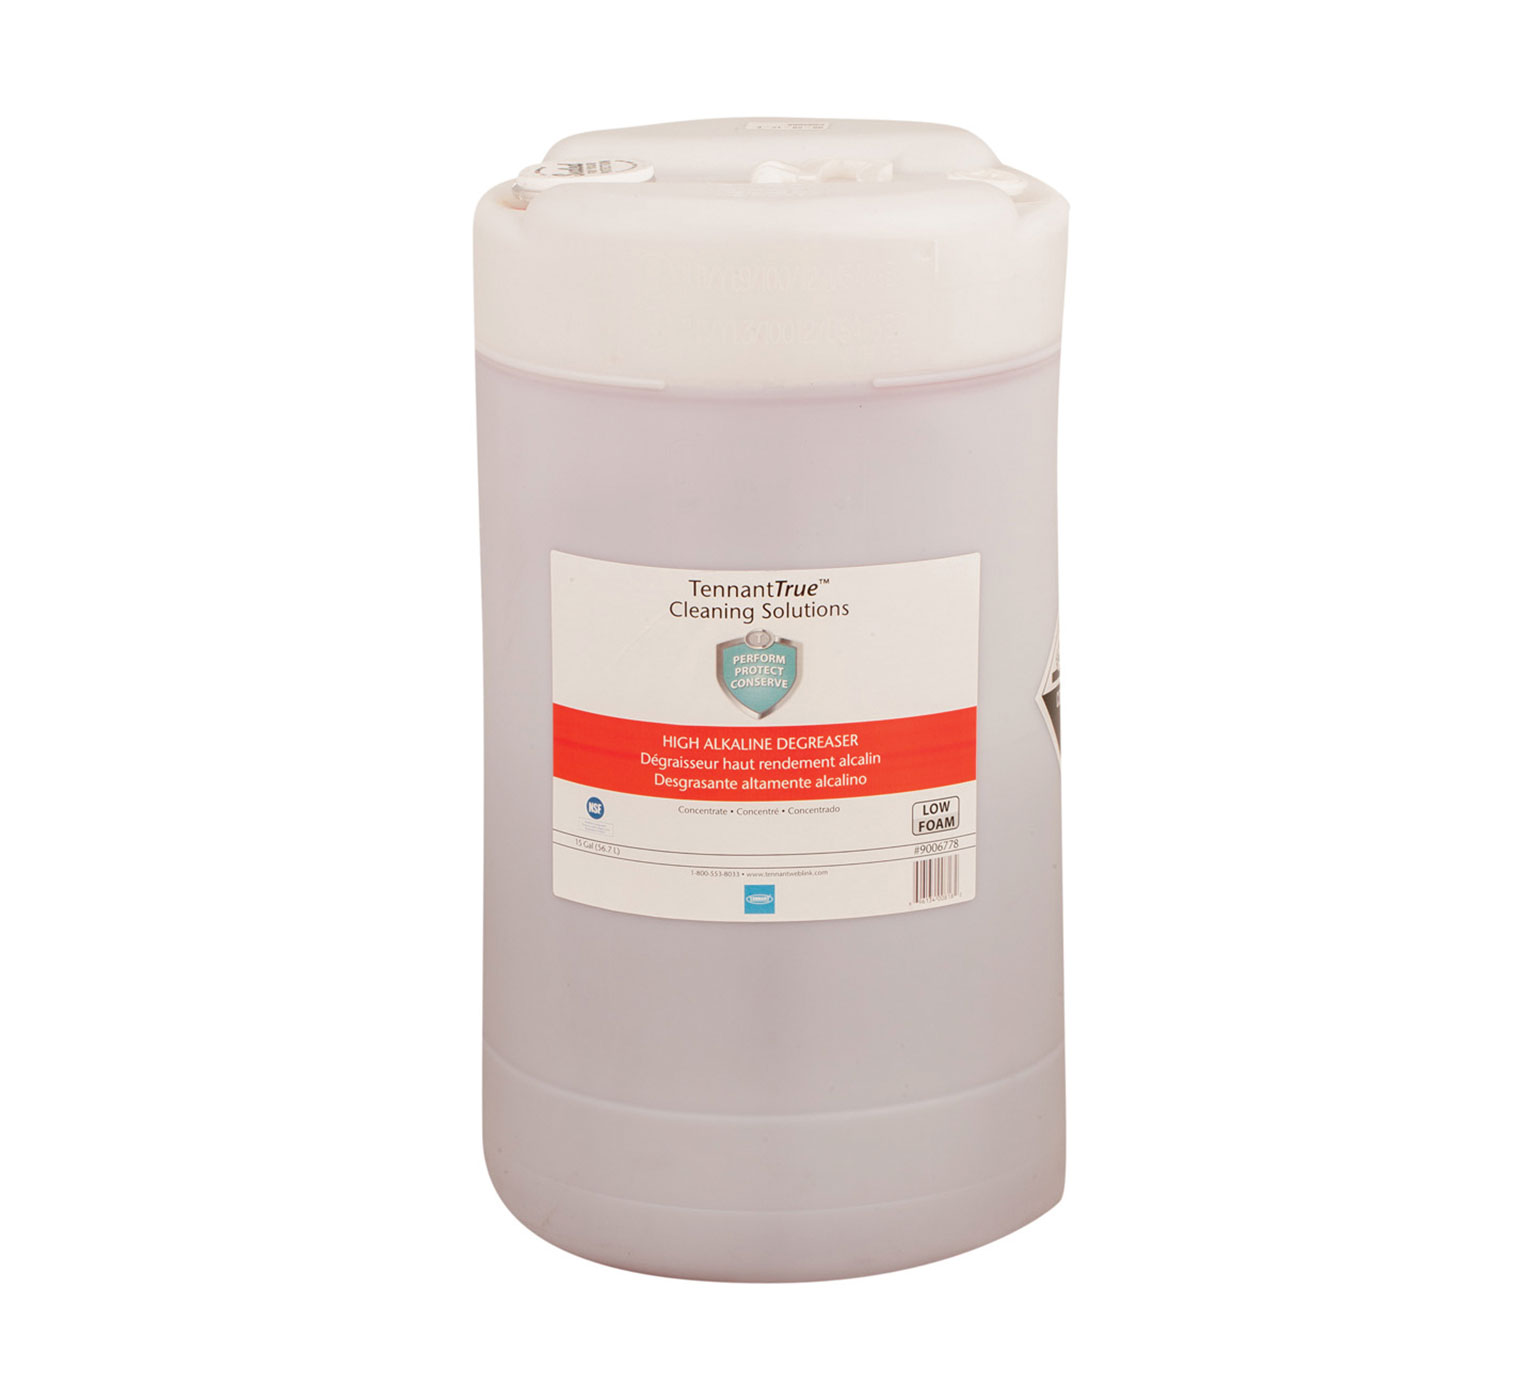 Tennant Red High Alkaline Degreaser 15 Gallon